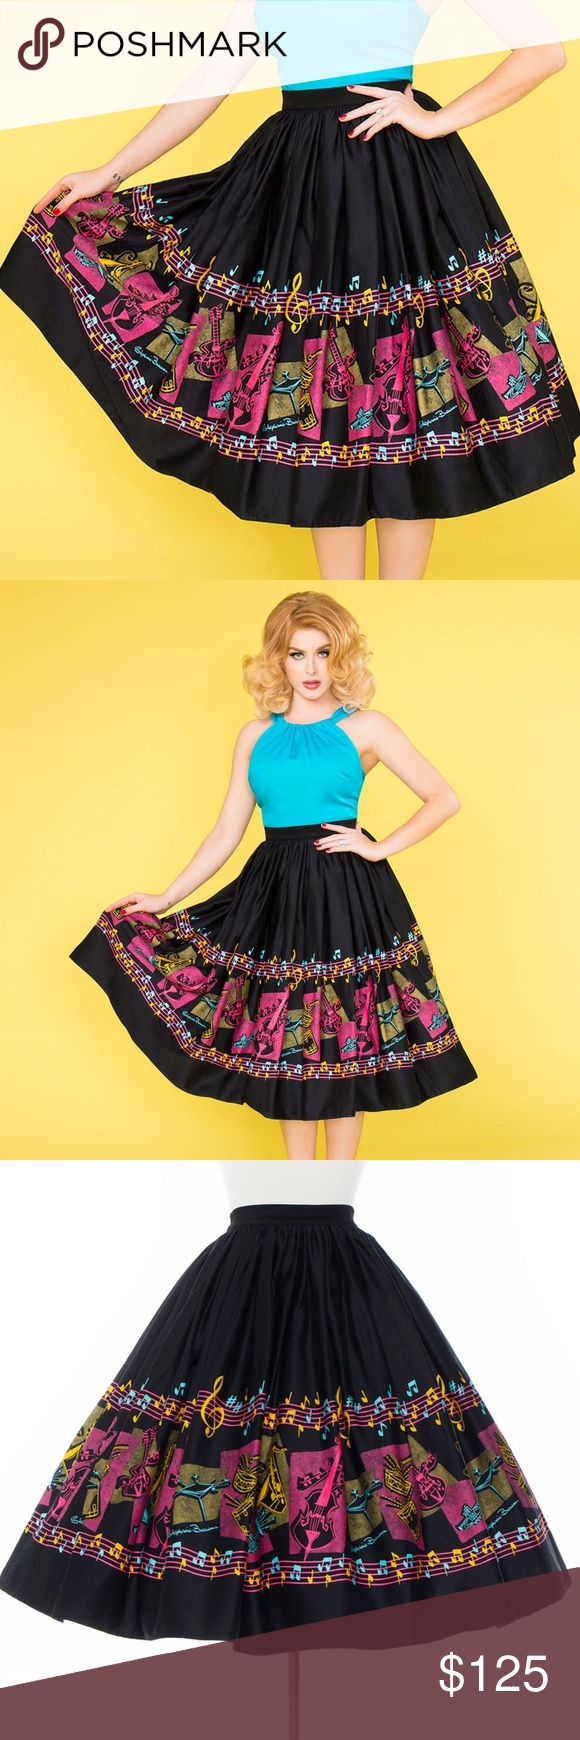 NEW 🎶Pinup Girl Jenny Skirt - MUSIC BORDER PRINT BRAND NEW WITH TAGS 🎶🎤 Pinup Girl Jenny Skirt - MUSIC BORDER PRINT - is made of cotton sateen, full skirt with 💕 POCKETS 💕. Flattering on every body type, the fullness of our Jenny Skirt works to slim bigger hips and make your waist look smaller while also creating instant curves for those that are more slender. Print from artist Stephanie Buscema. Border of drums, guitars, trumpets, saxophones, bass, cymbals & music notes in hot pink…